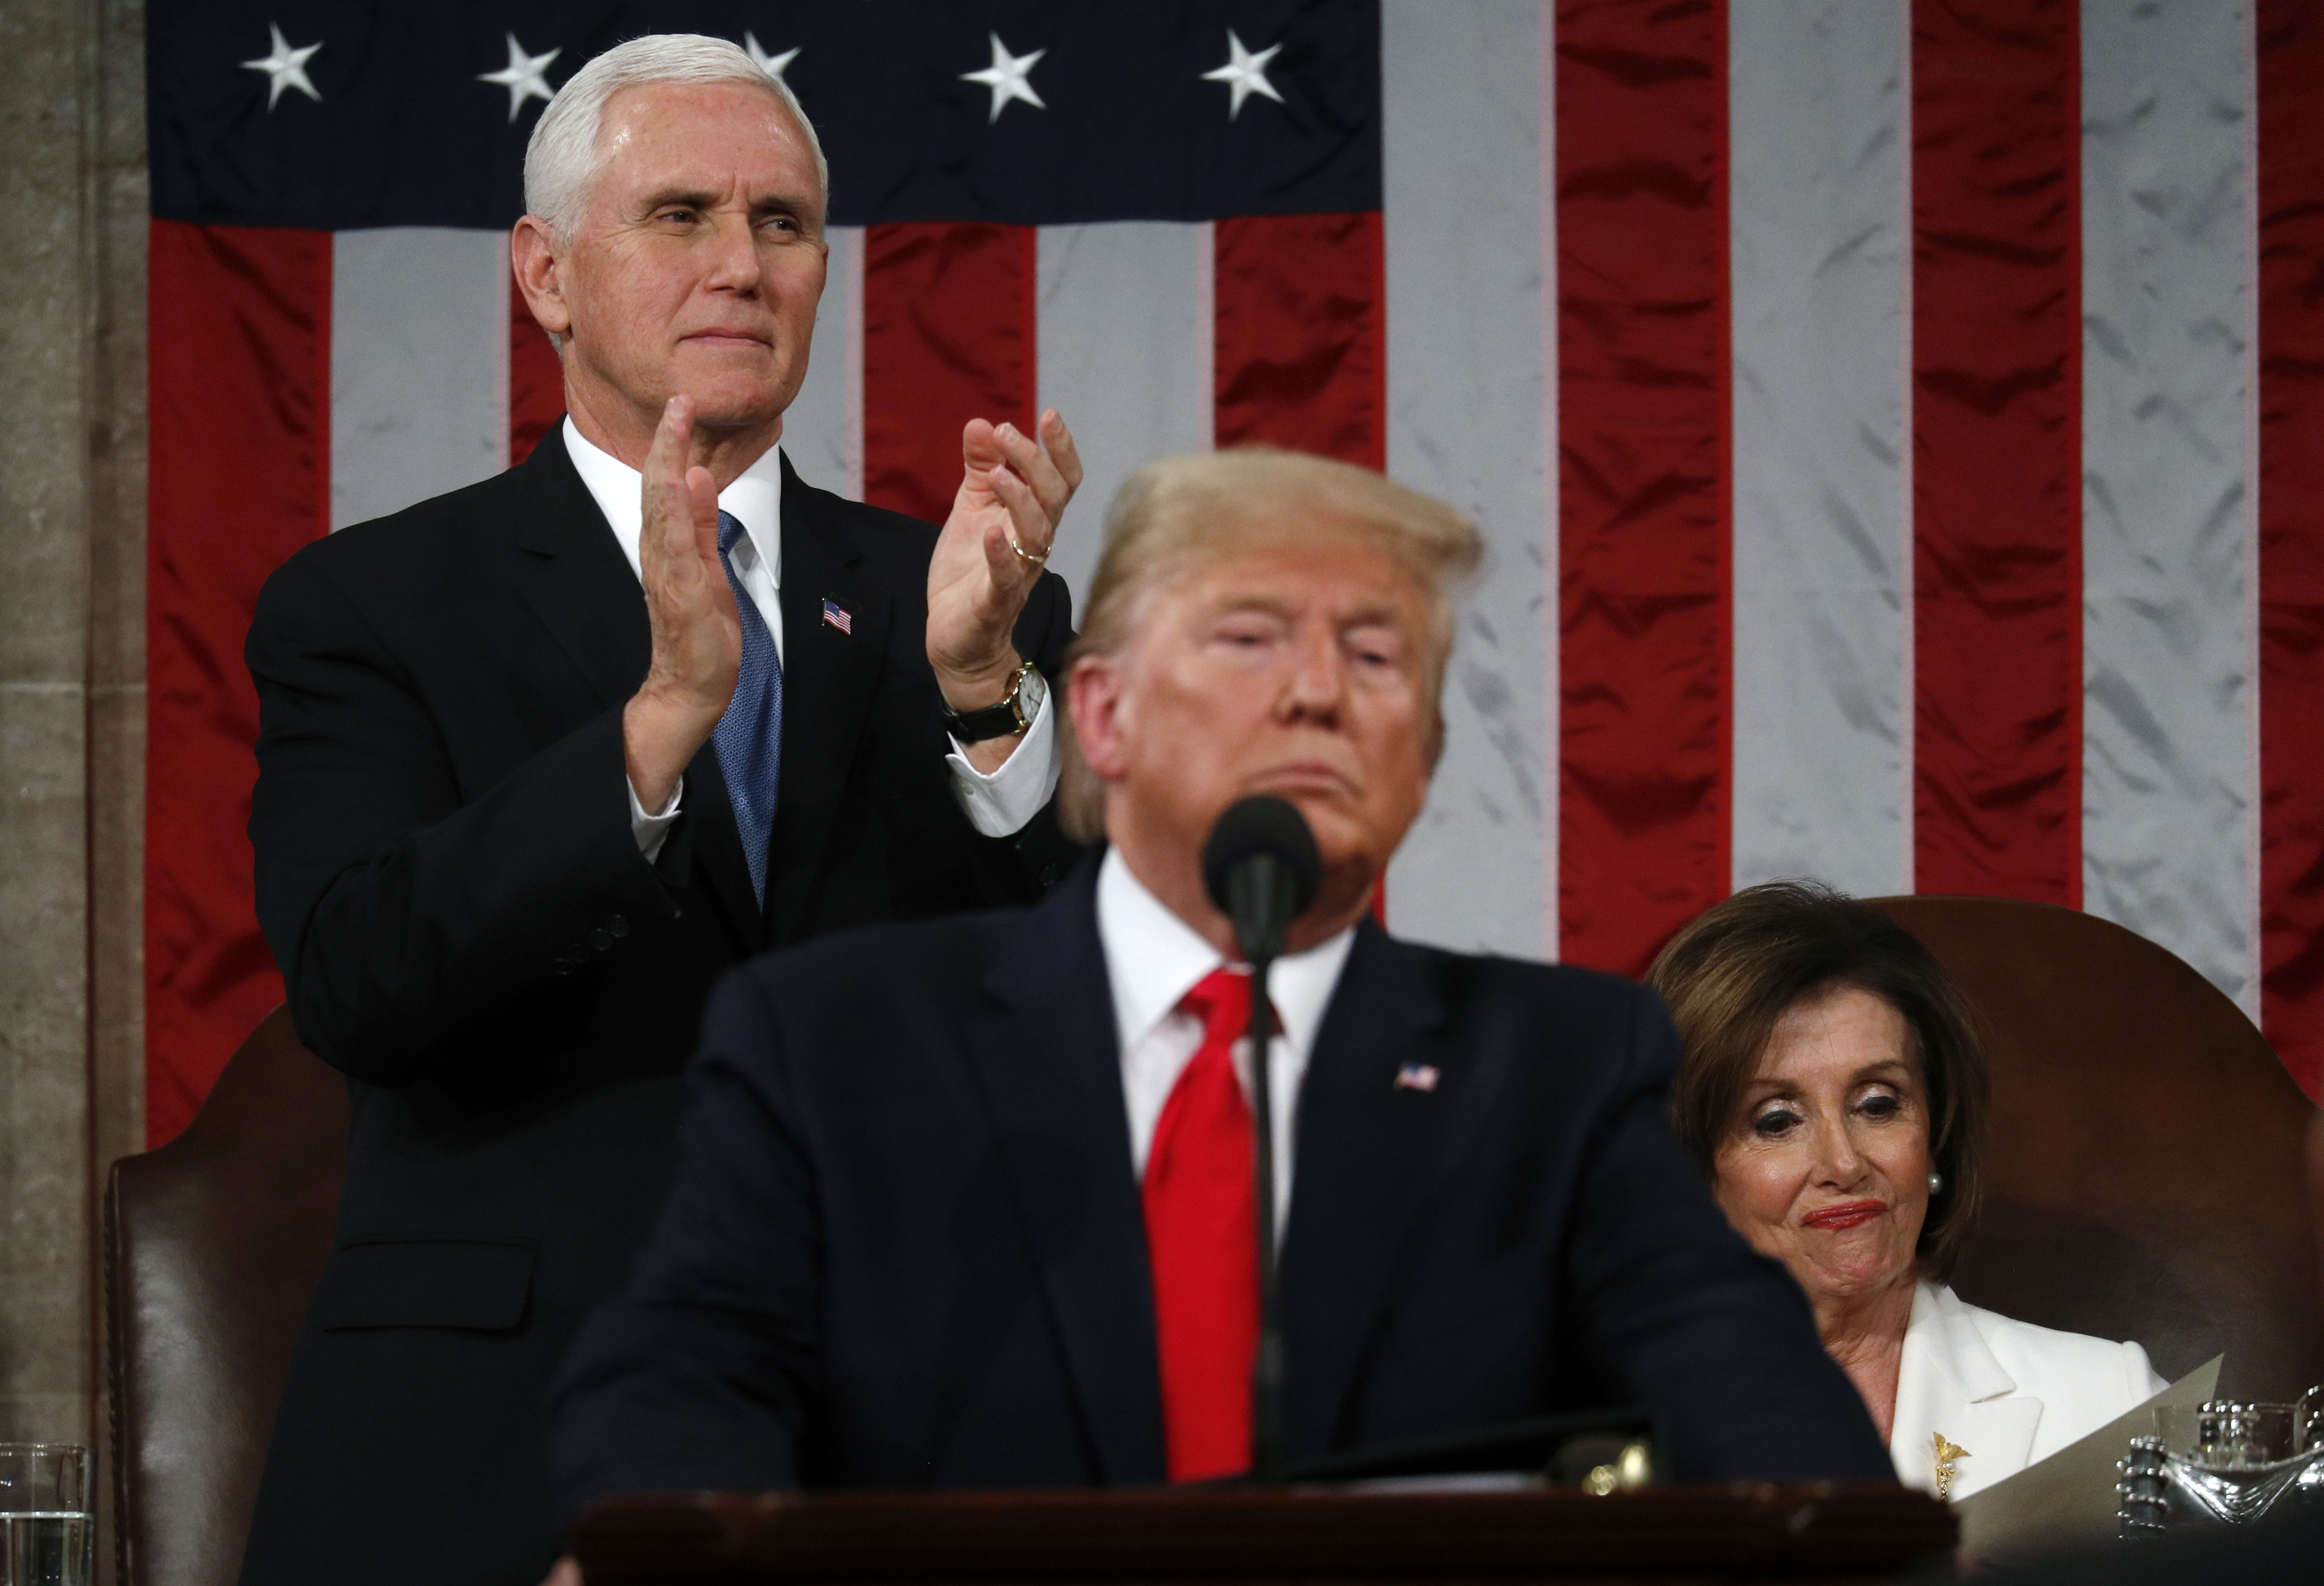 US Political Divide on Display During State of the Union Address